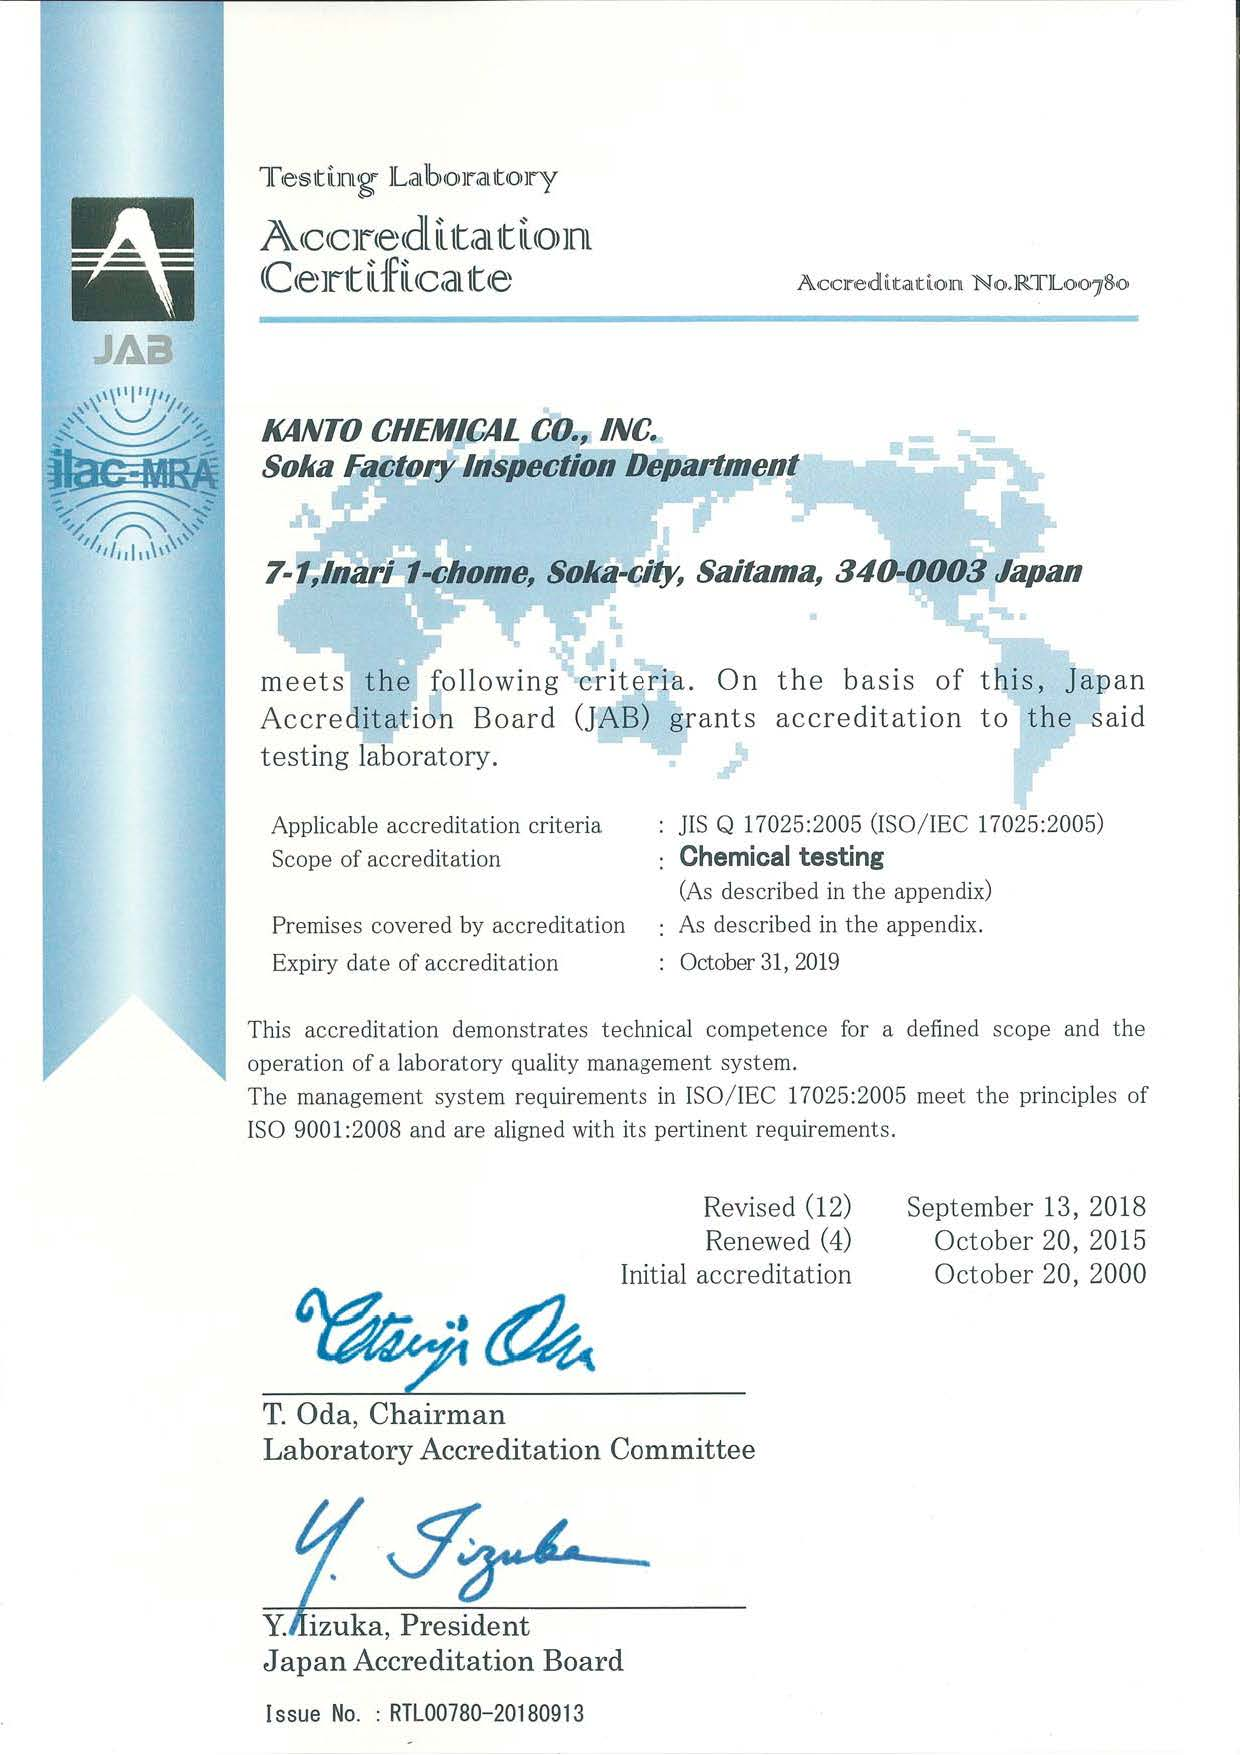 Accredited according to ISO/IEC 17025